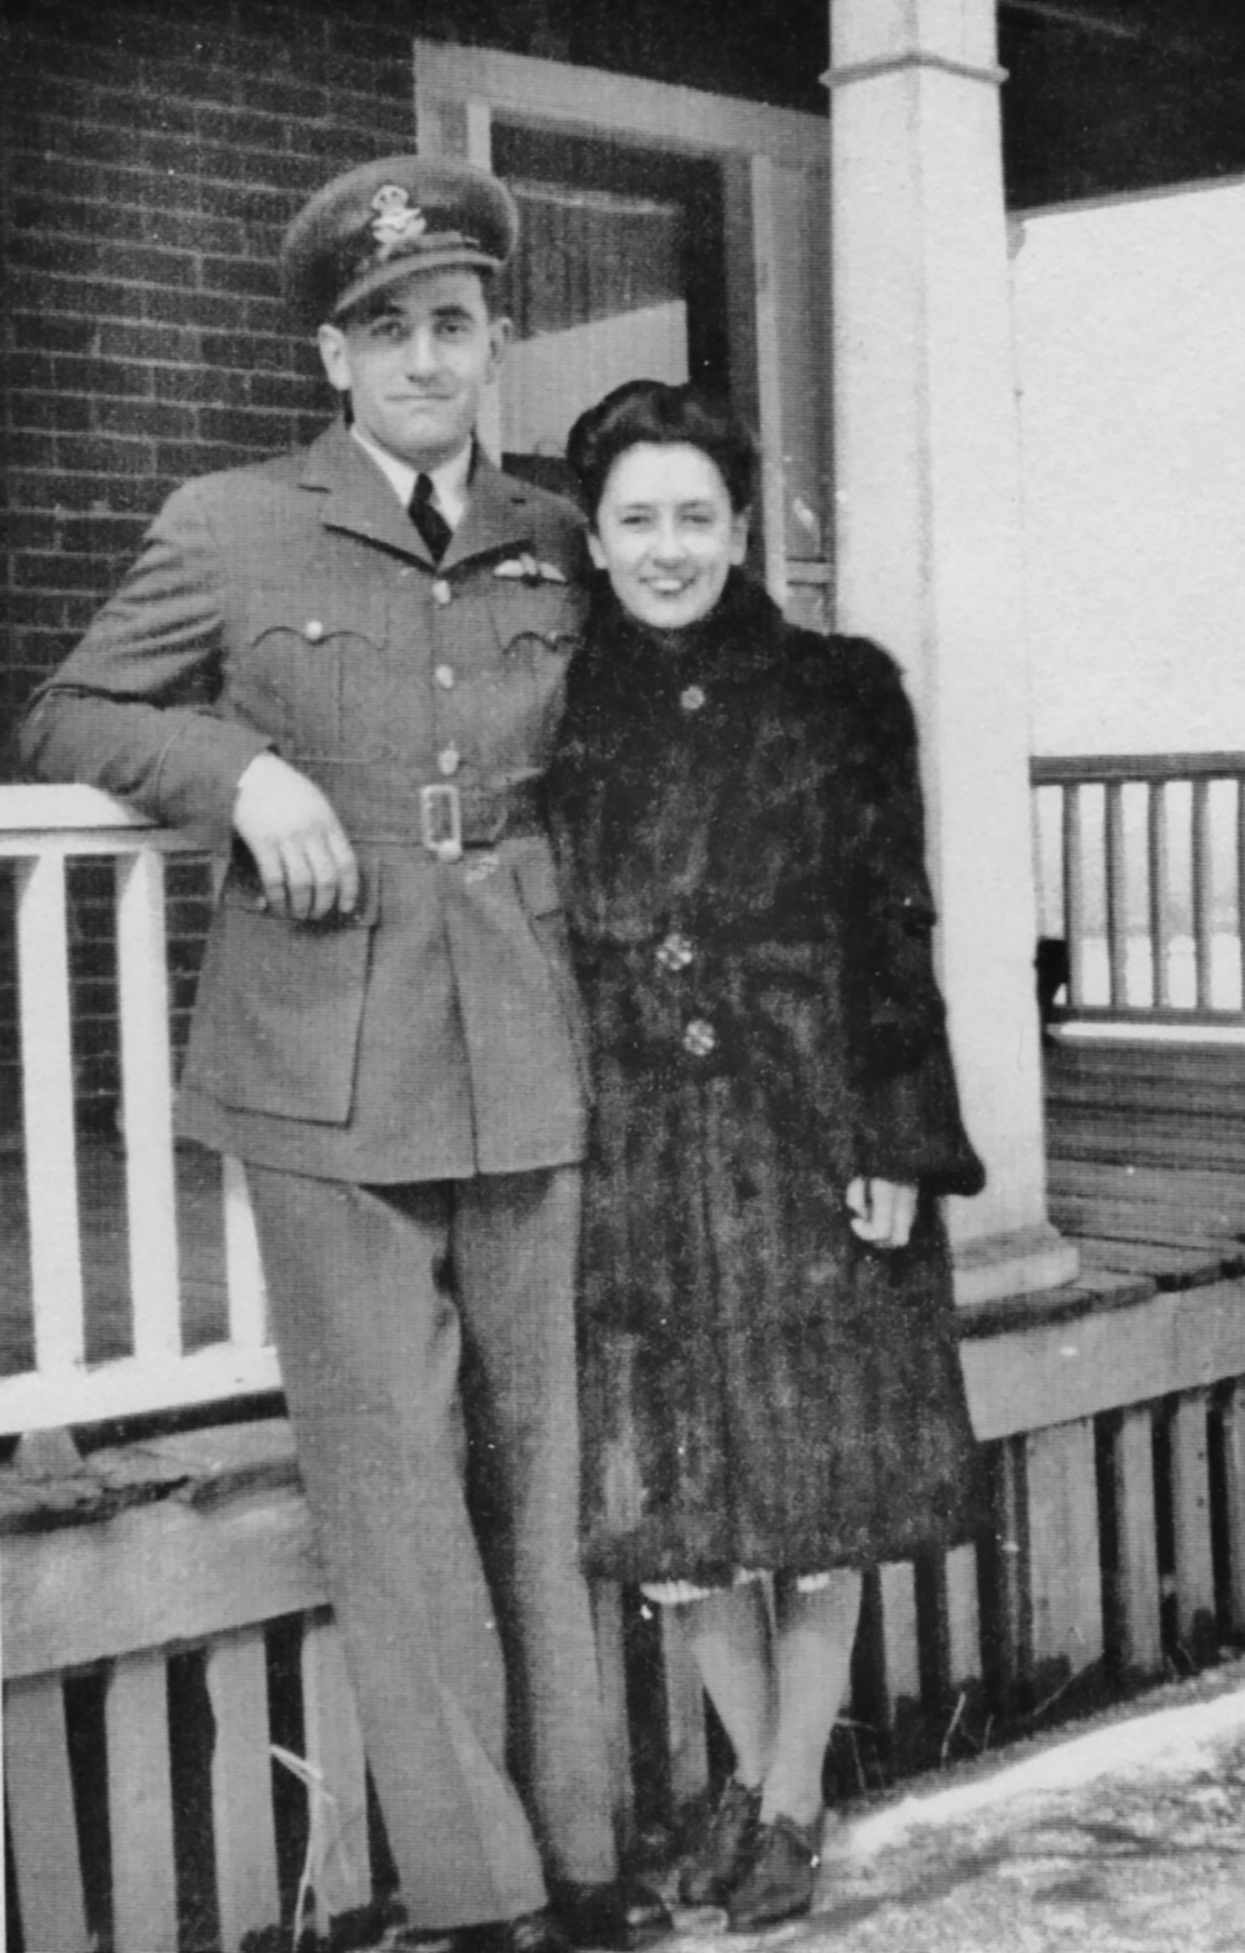 Bonter pictured here with Marion Vincent Barron. Photo courtesy Bonter family archives.